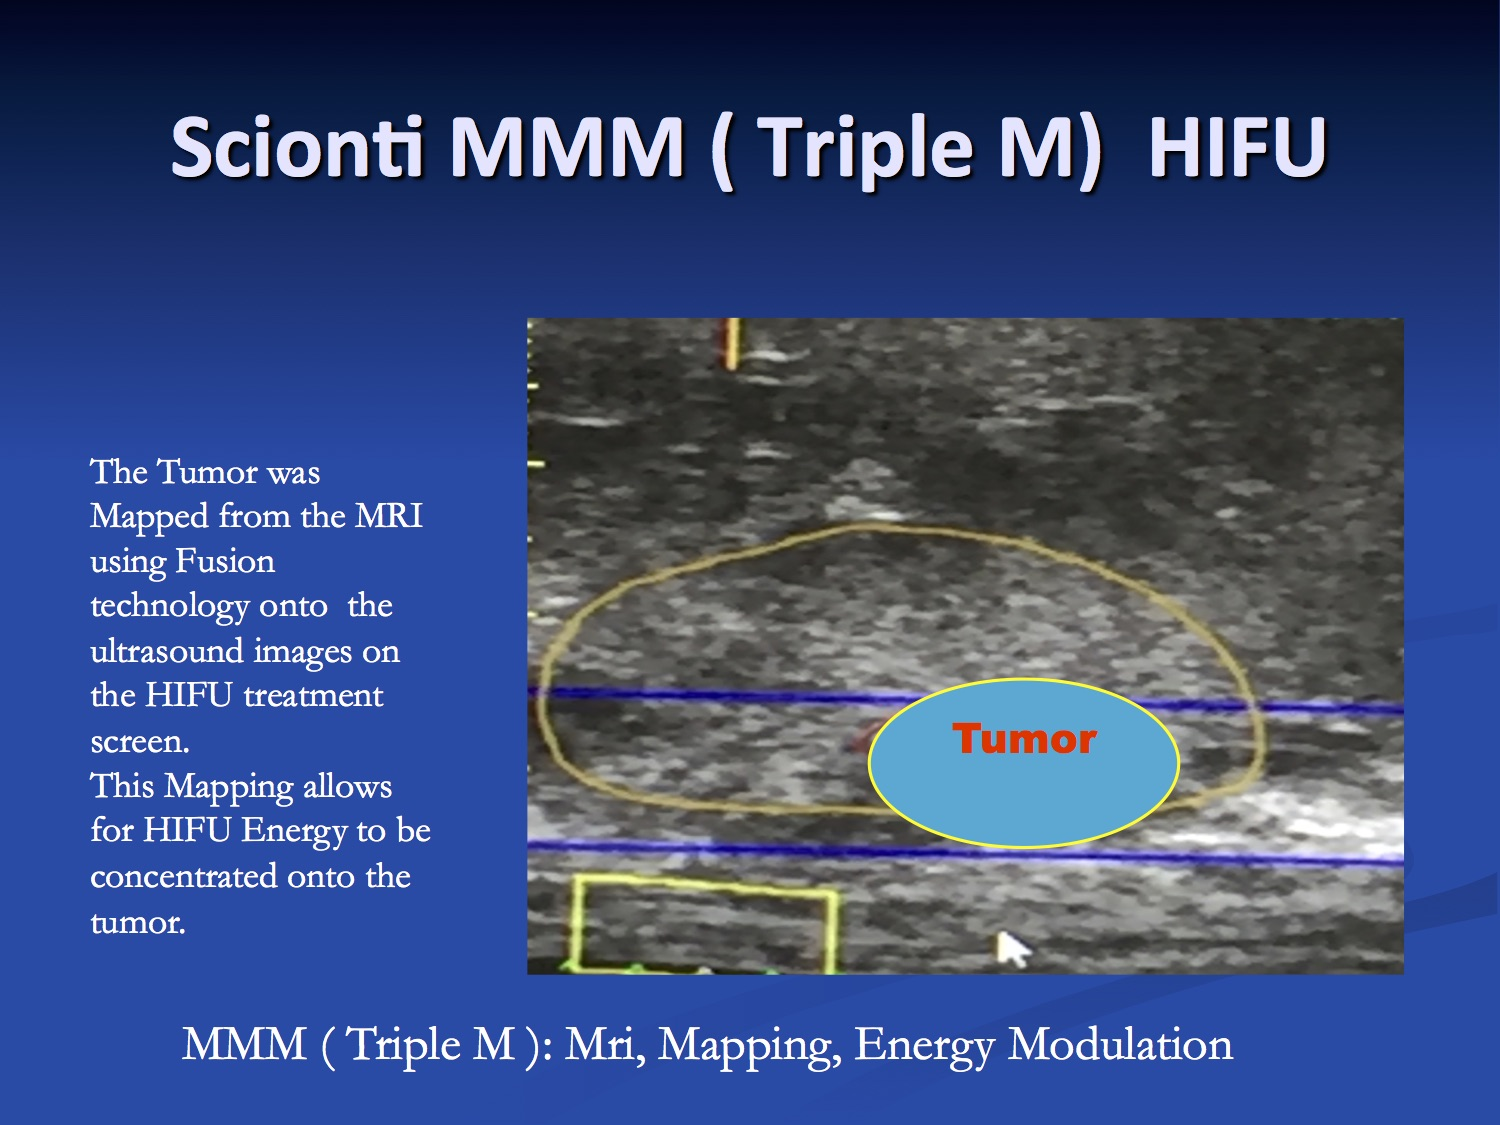 Scionti MRI guided HIFU treatment